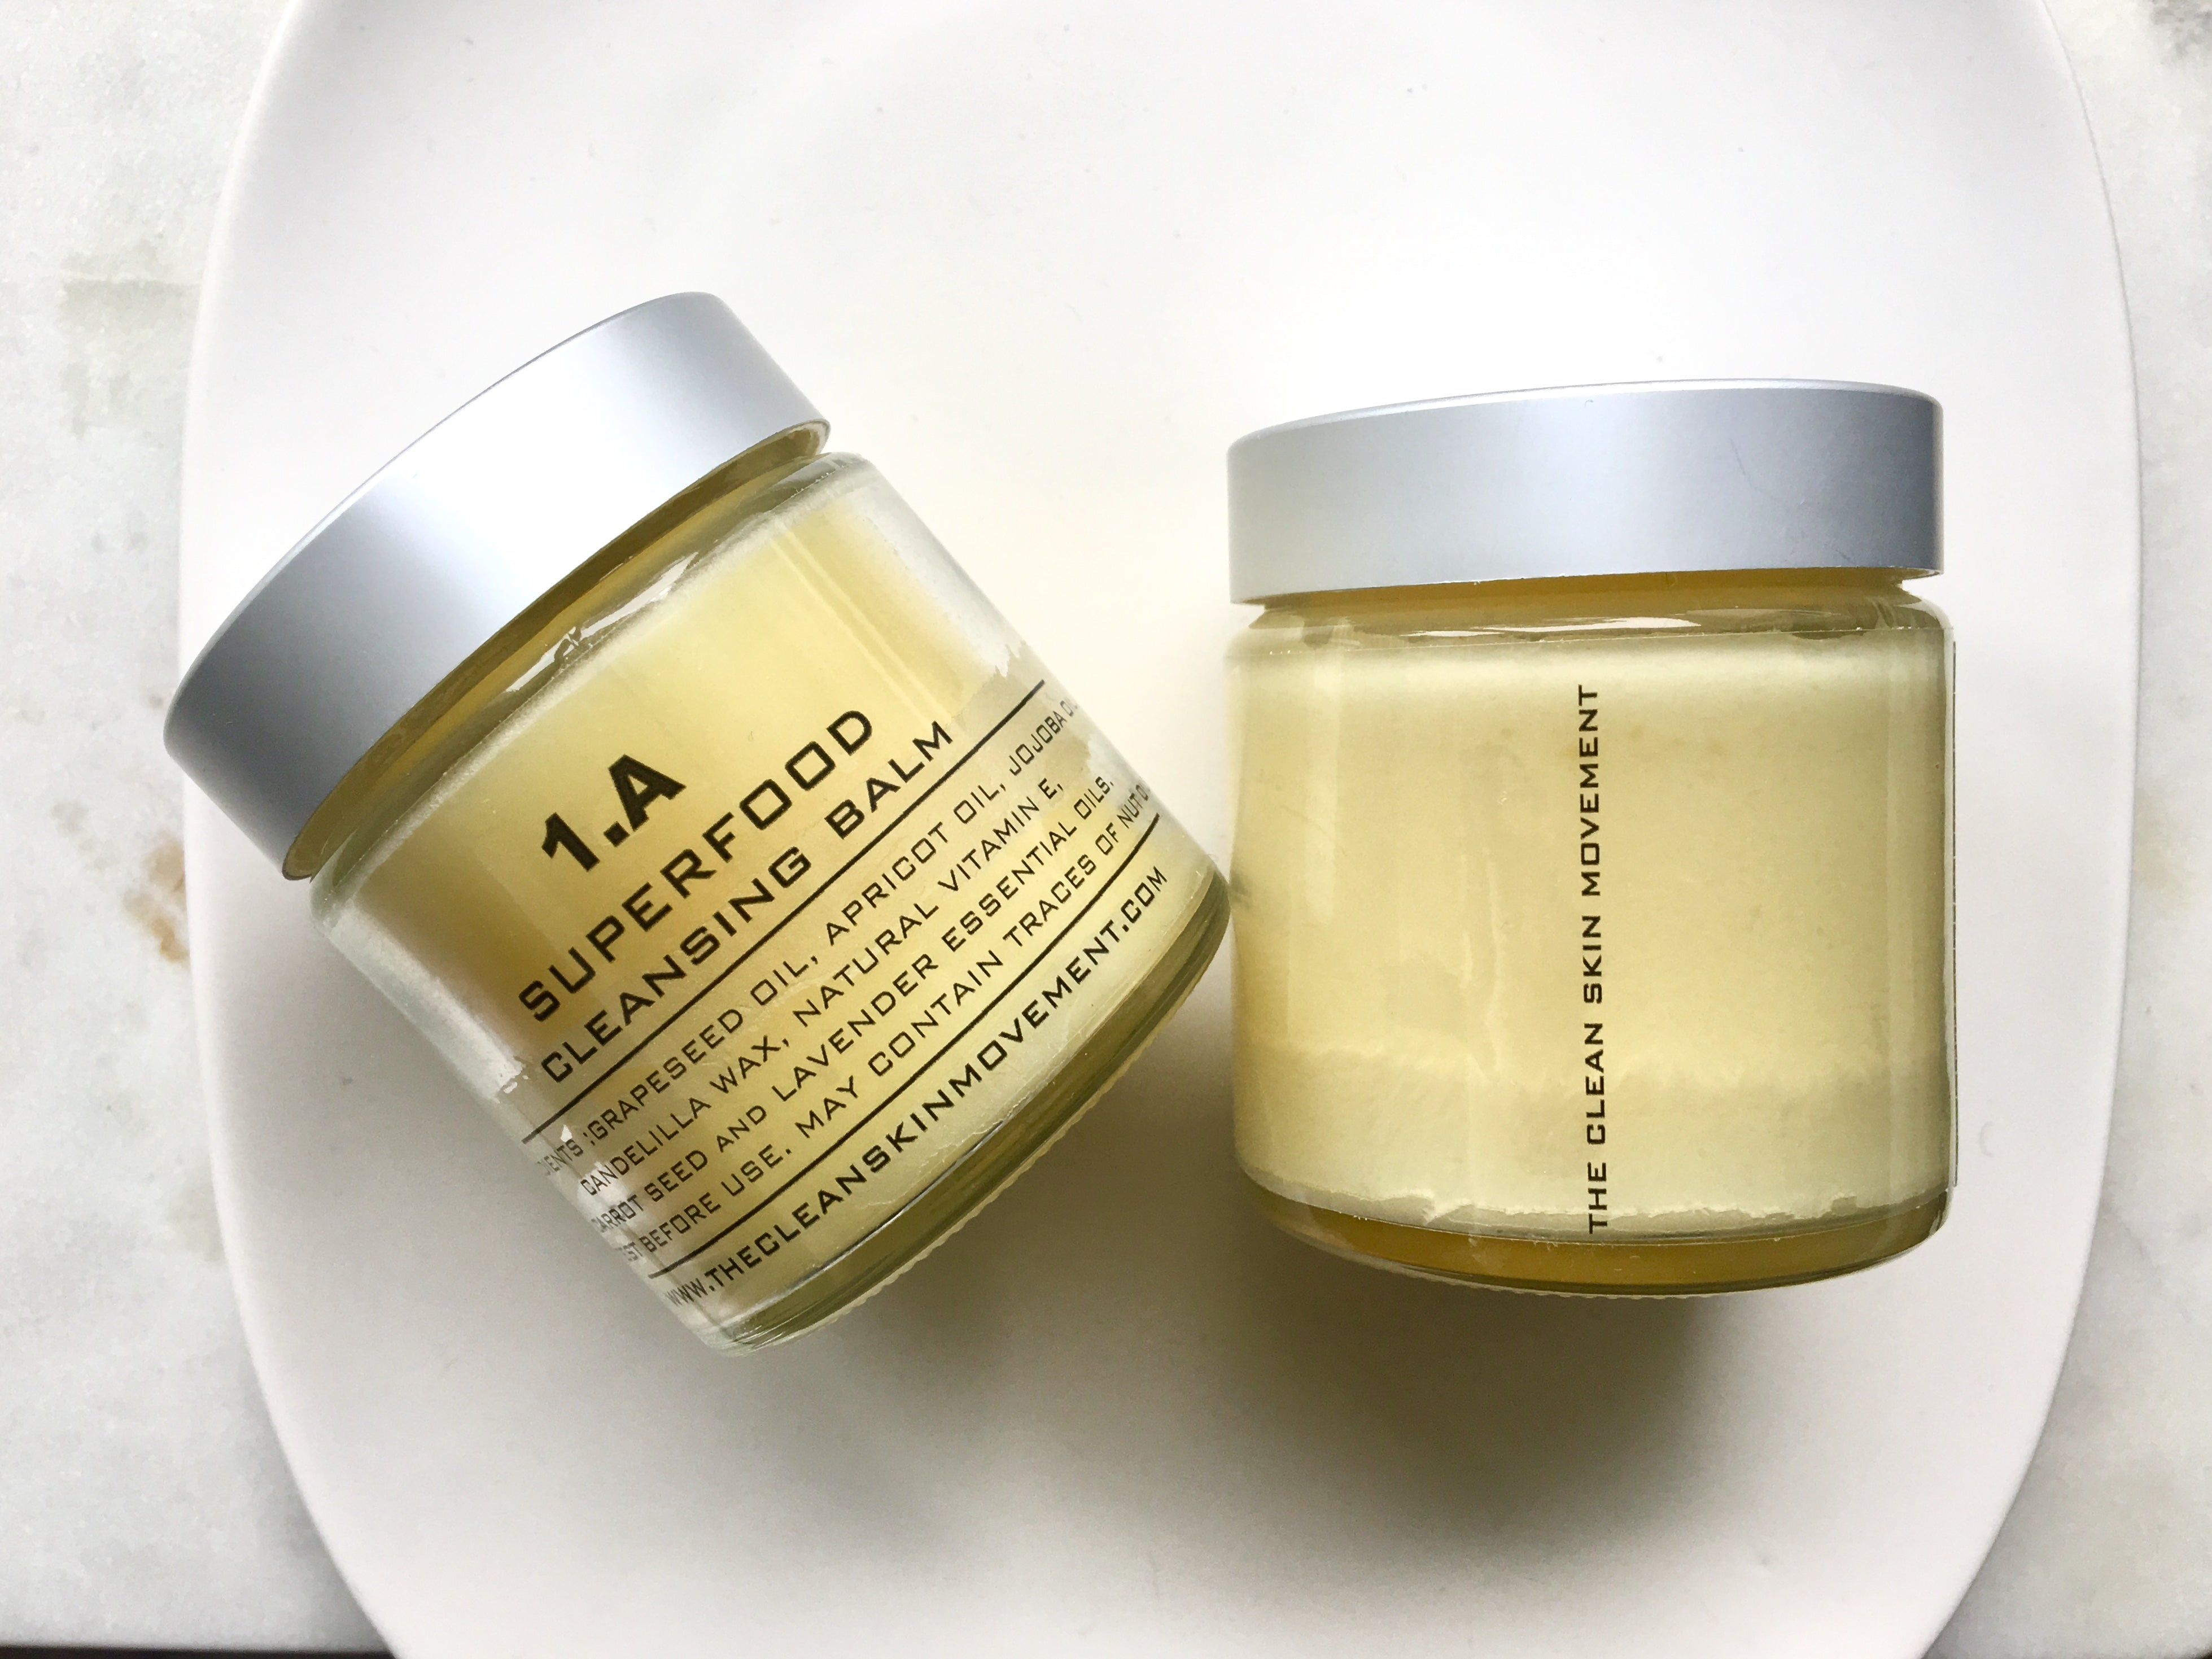 1.A SUPERFOOD CLEANSING BALM